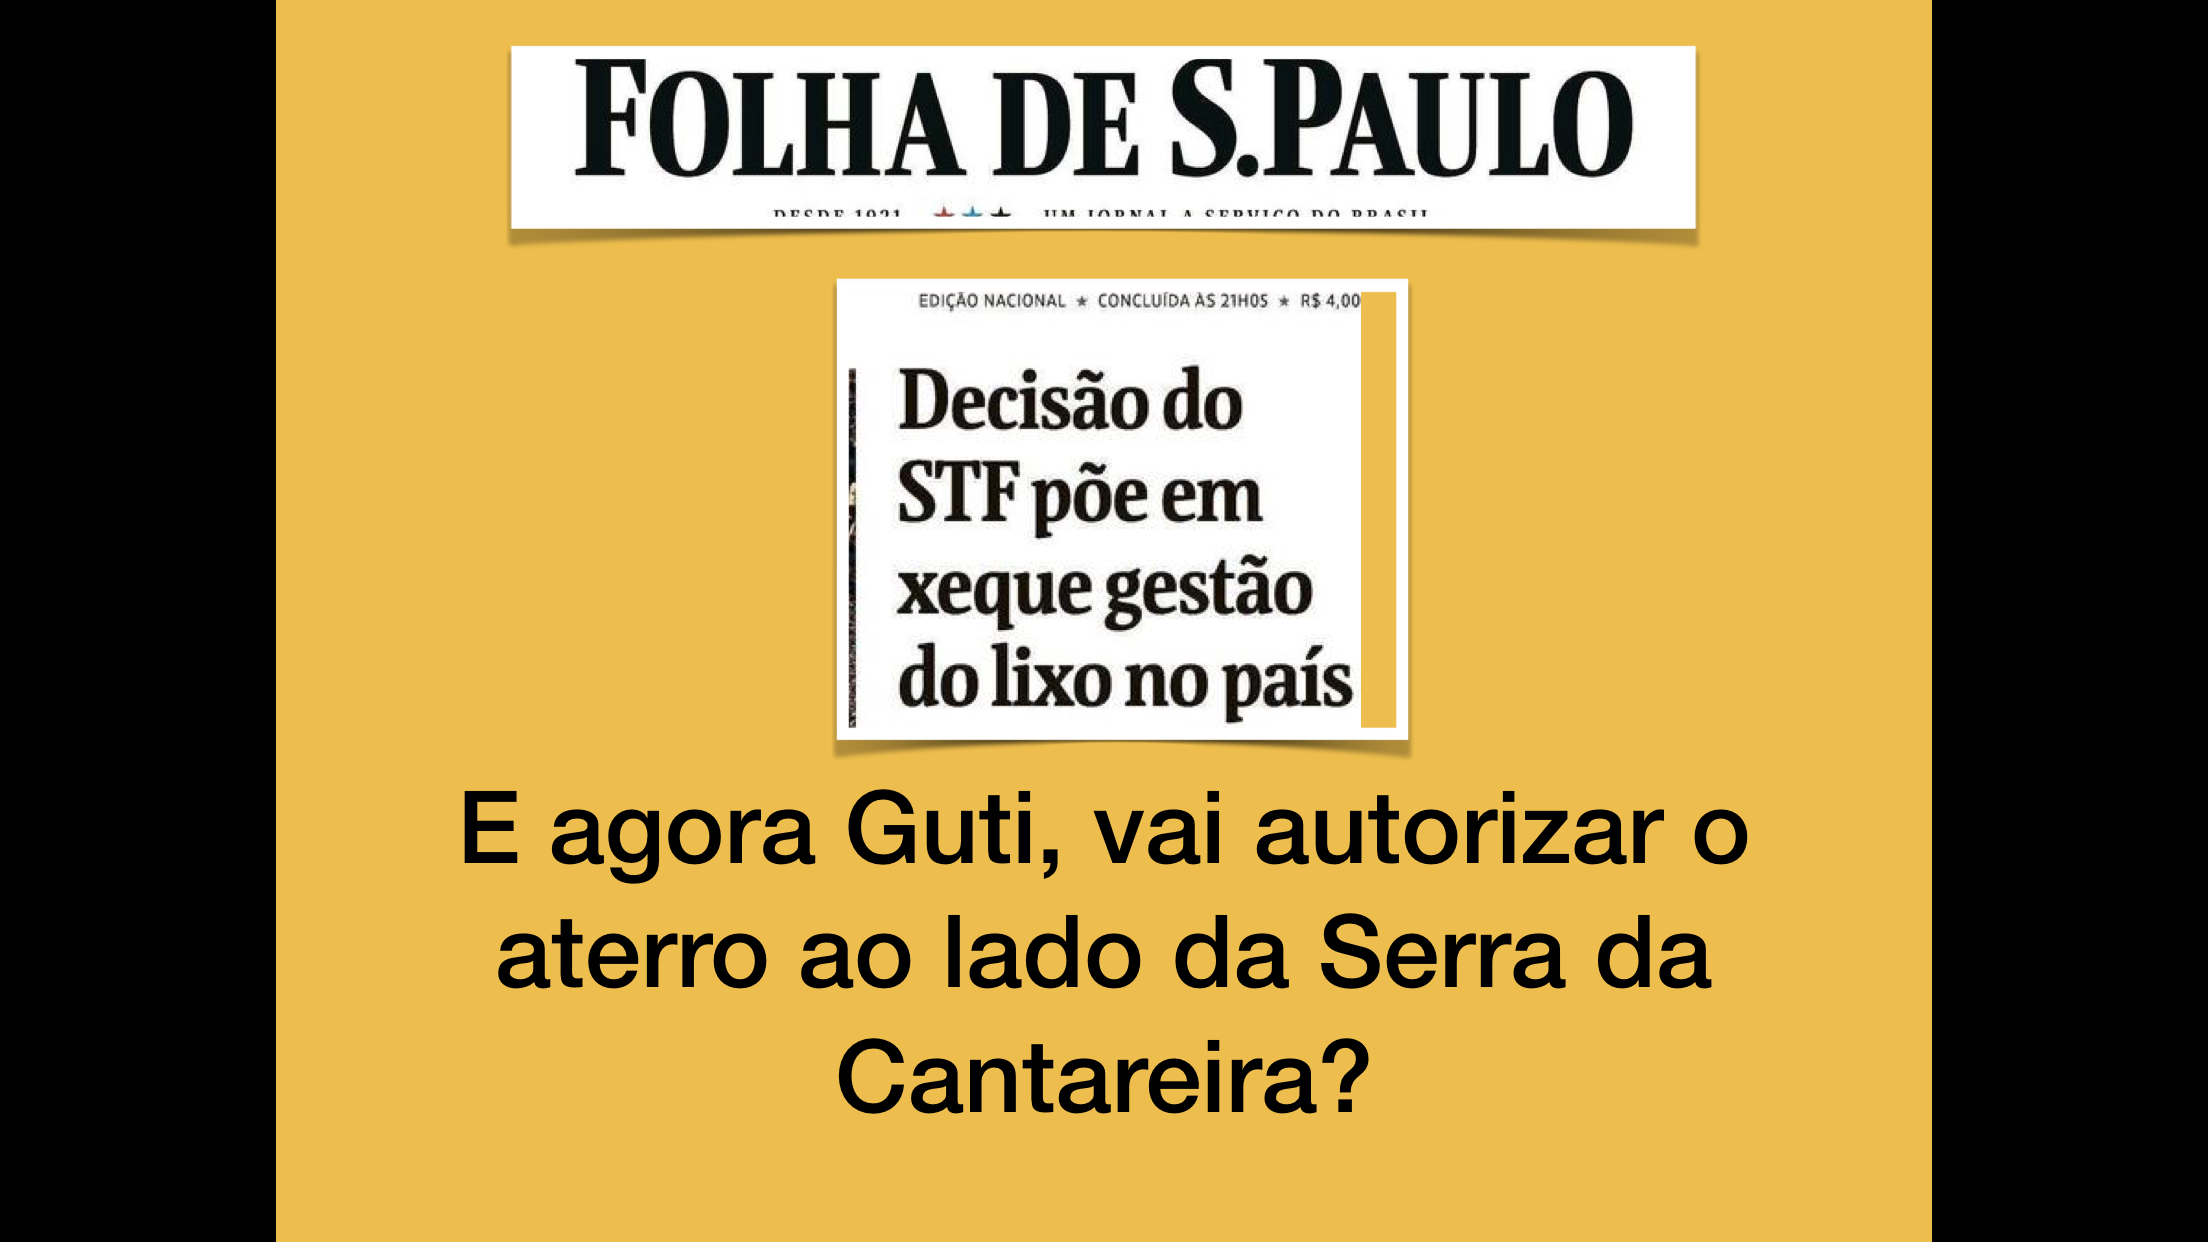 http://www.alencarbraga13.com.br/site/wp-content/uploads/2018/07/1c86bee4-7989-4881-a250-0531379b7c10.png